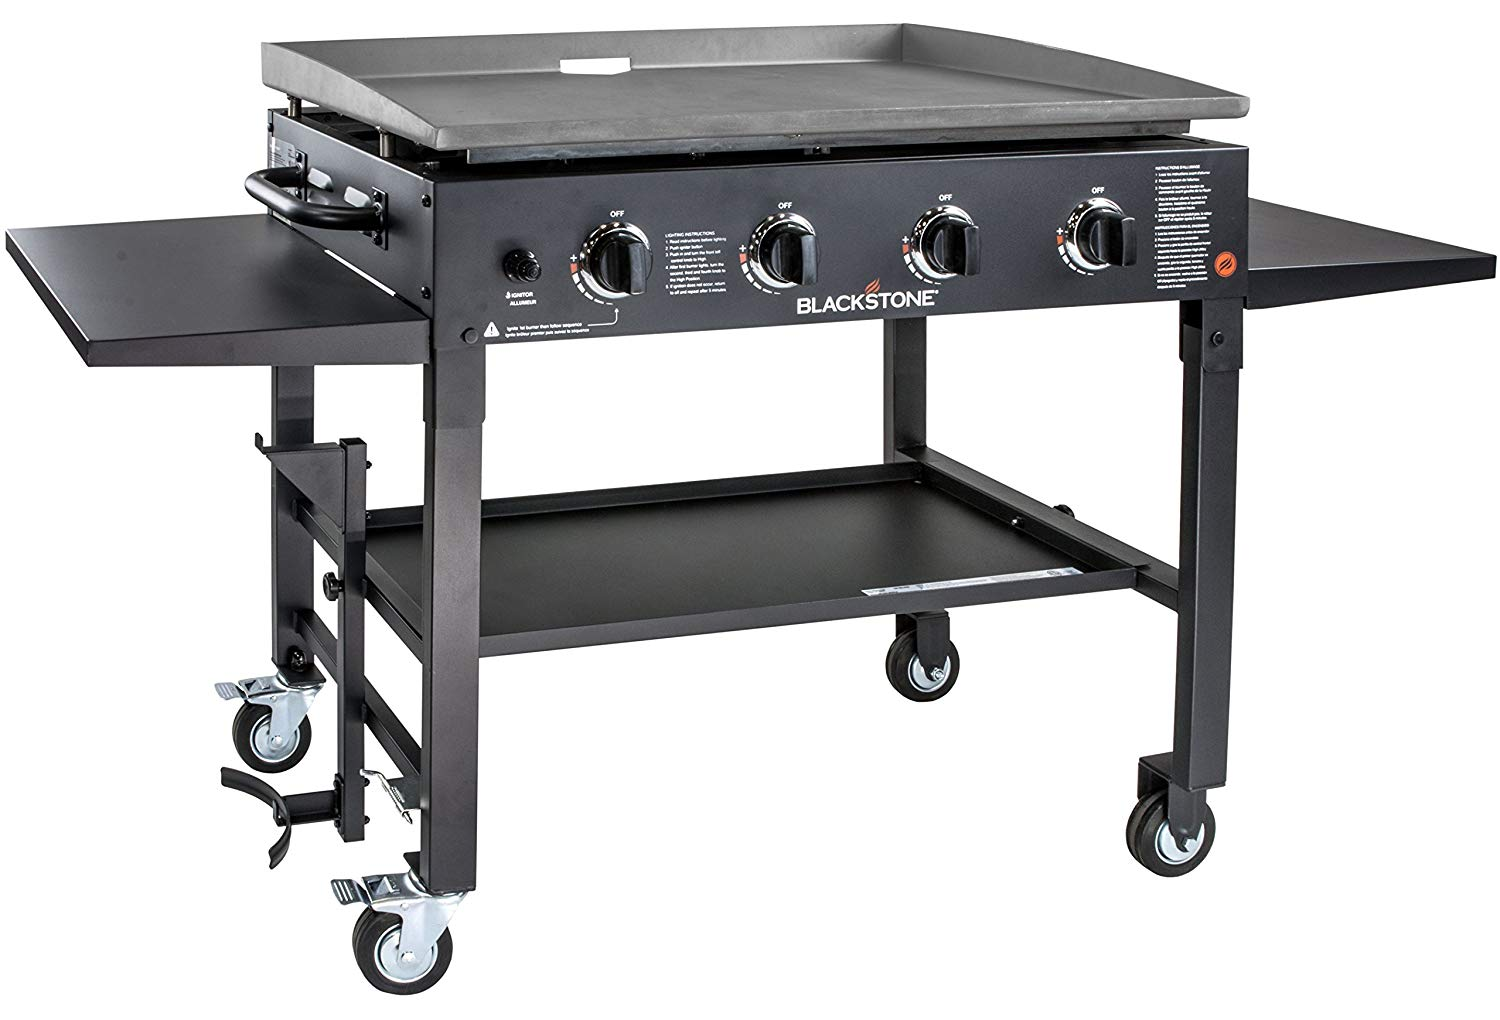 Blackstone 1554 Station Flat Top Gas Grill Griddle, 36-Inch